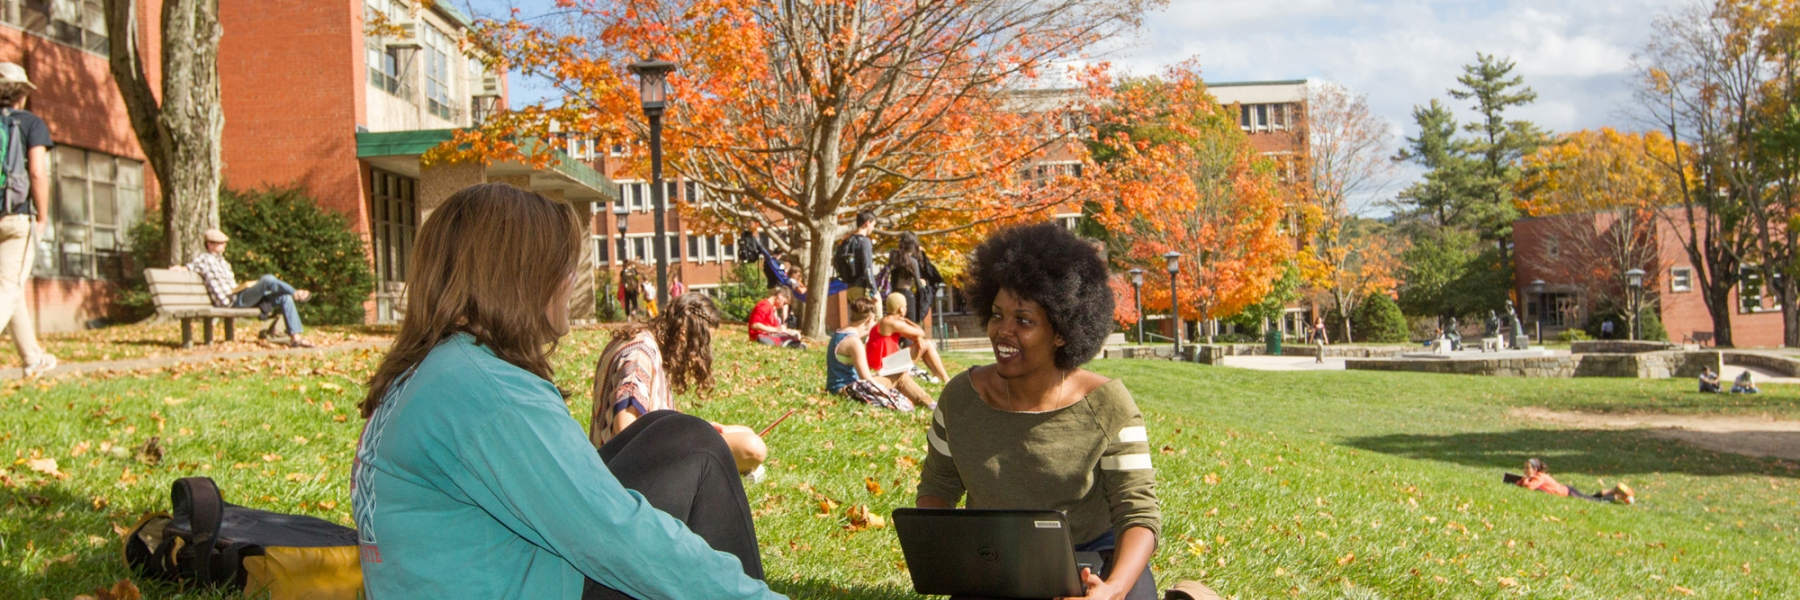 Image, Students, Fall on campus